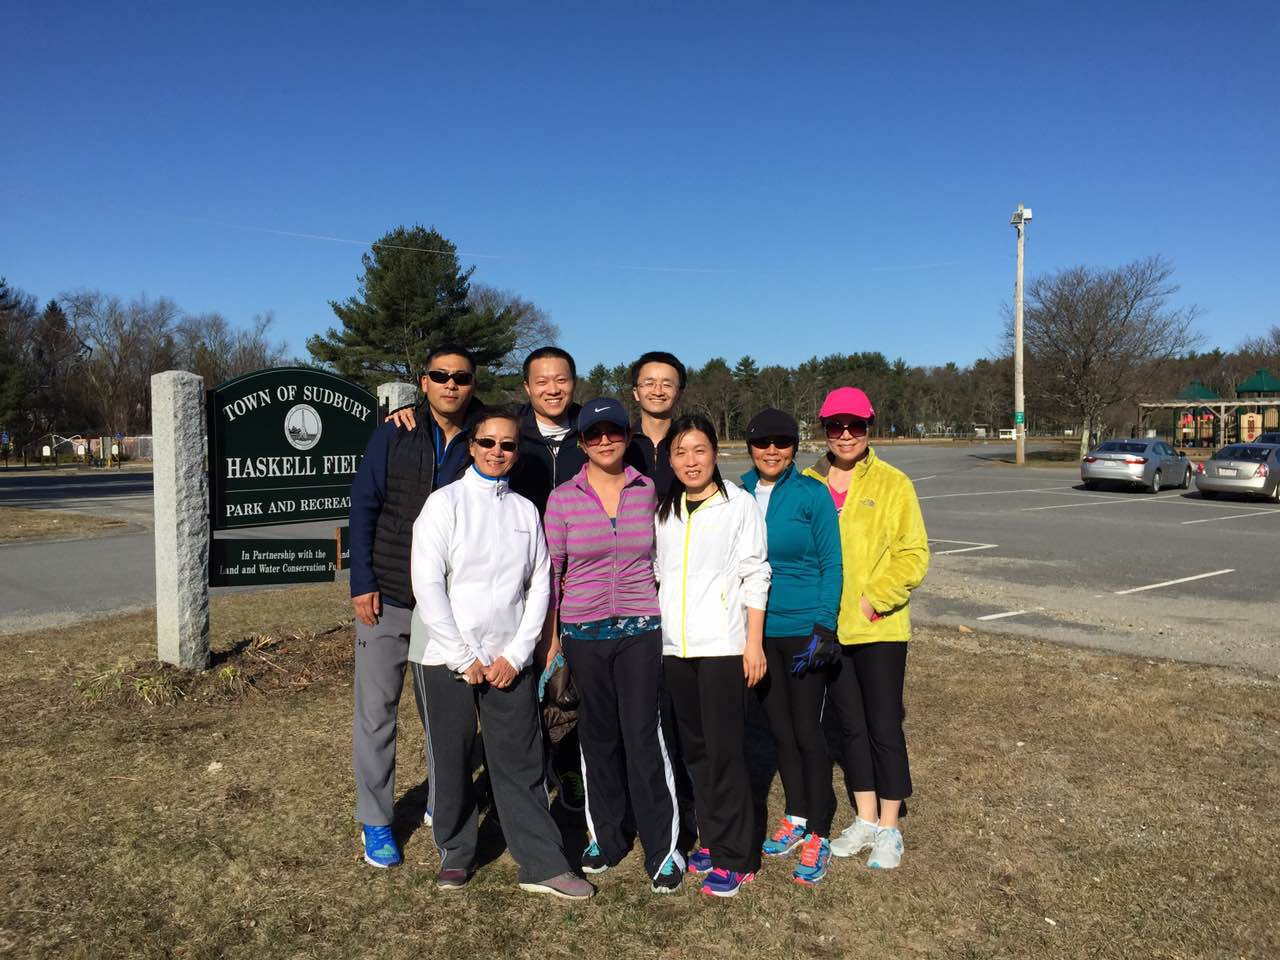 Sudbury Runners held its first group run on April 12, 2015